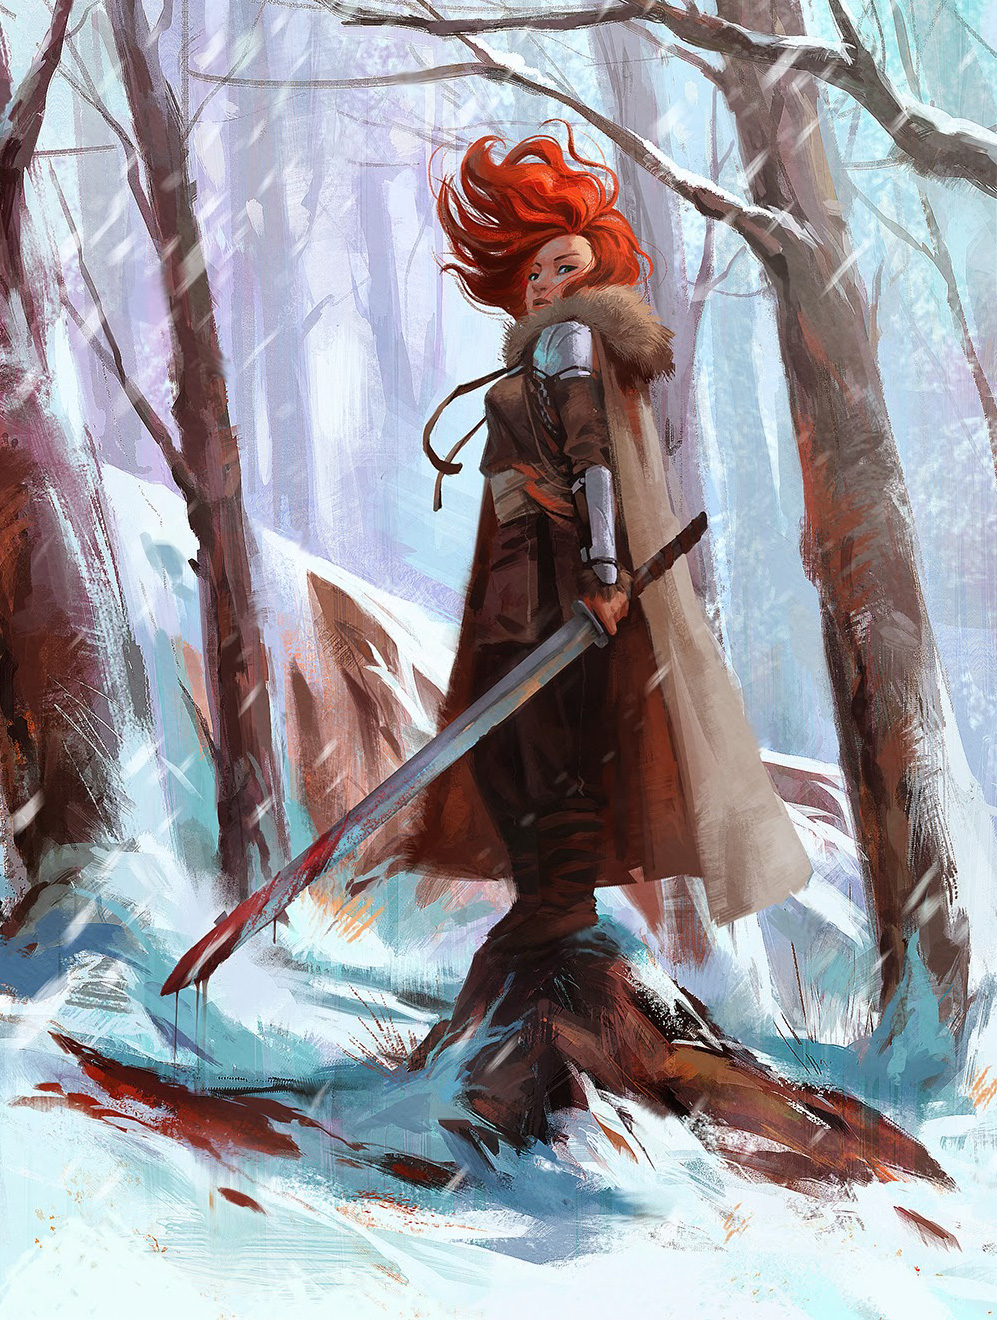 Game of Thrones Concept Art and Illustrations I